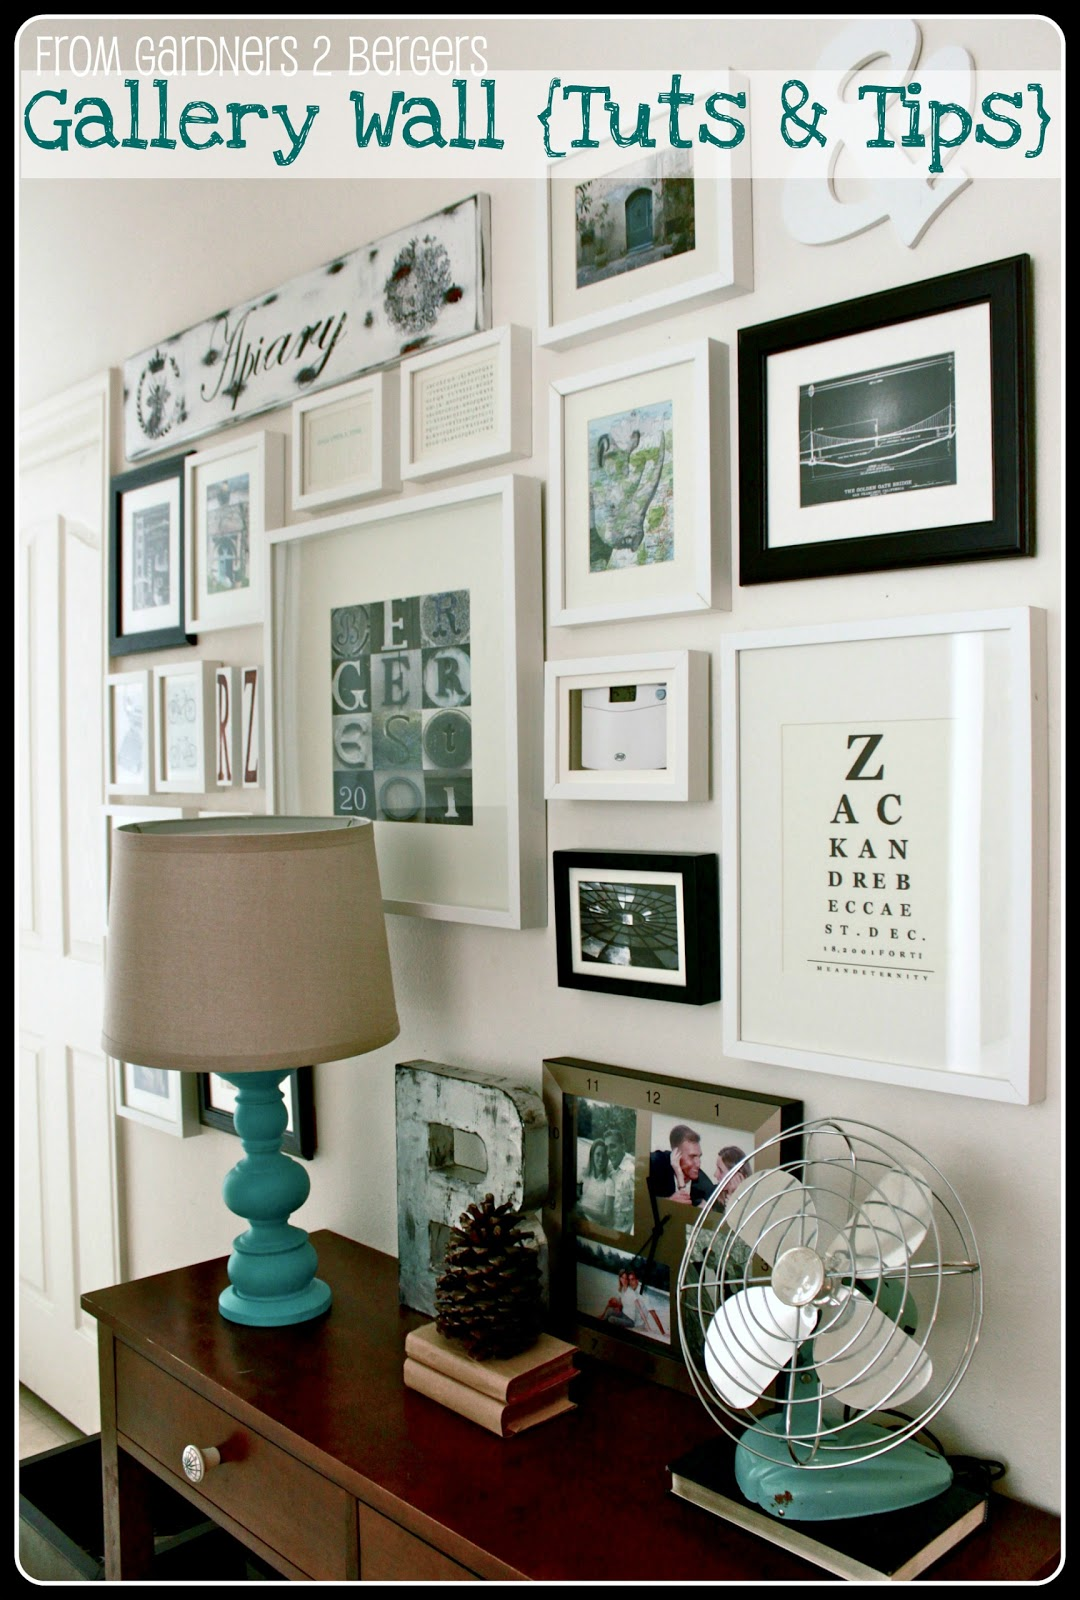 Gallery-Wall-+-Tutes-&-Tips